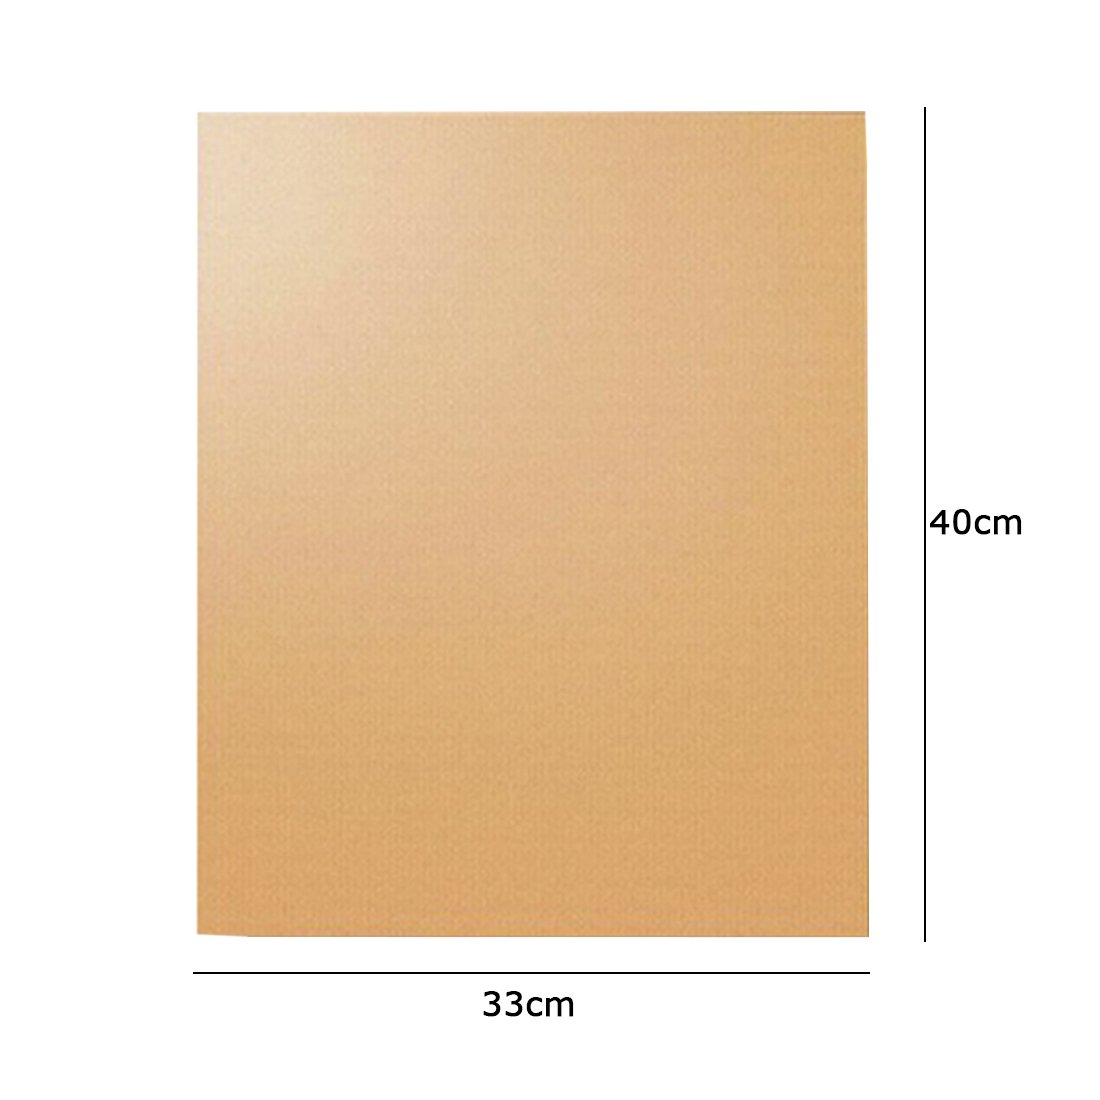 2Pcs Kitchen Chef Grill and Bake Mats Outdoor BBQ Barbecue Grills Mat Color Copper